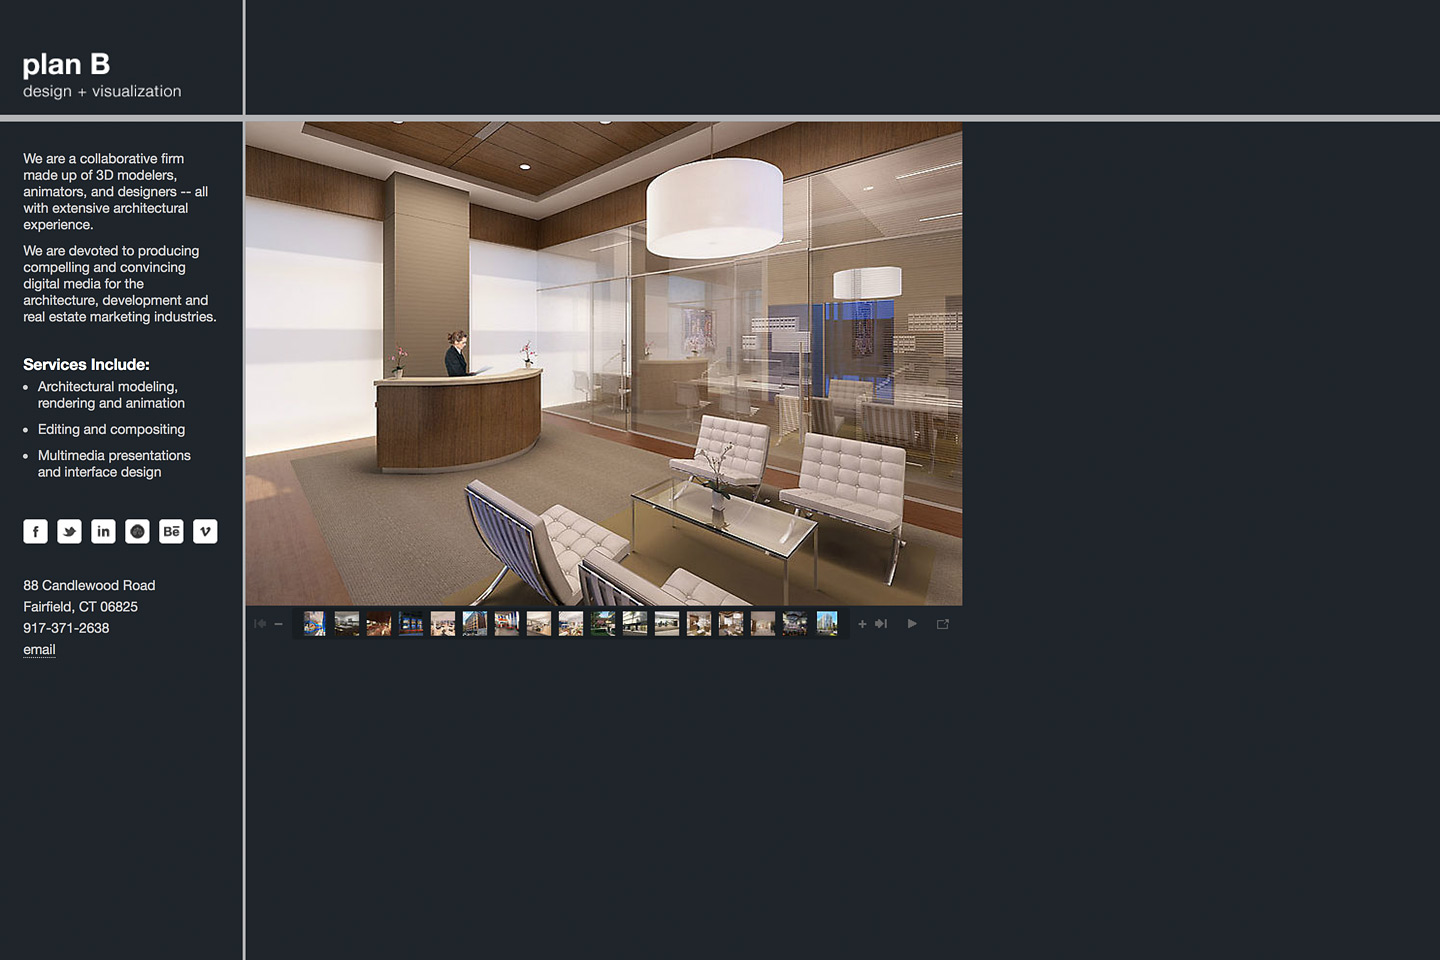 a screen capture of the planbdesign.net website featuring a rendering of an interior reception area of the 330 madison ave citibank citigold